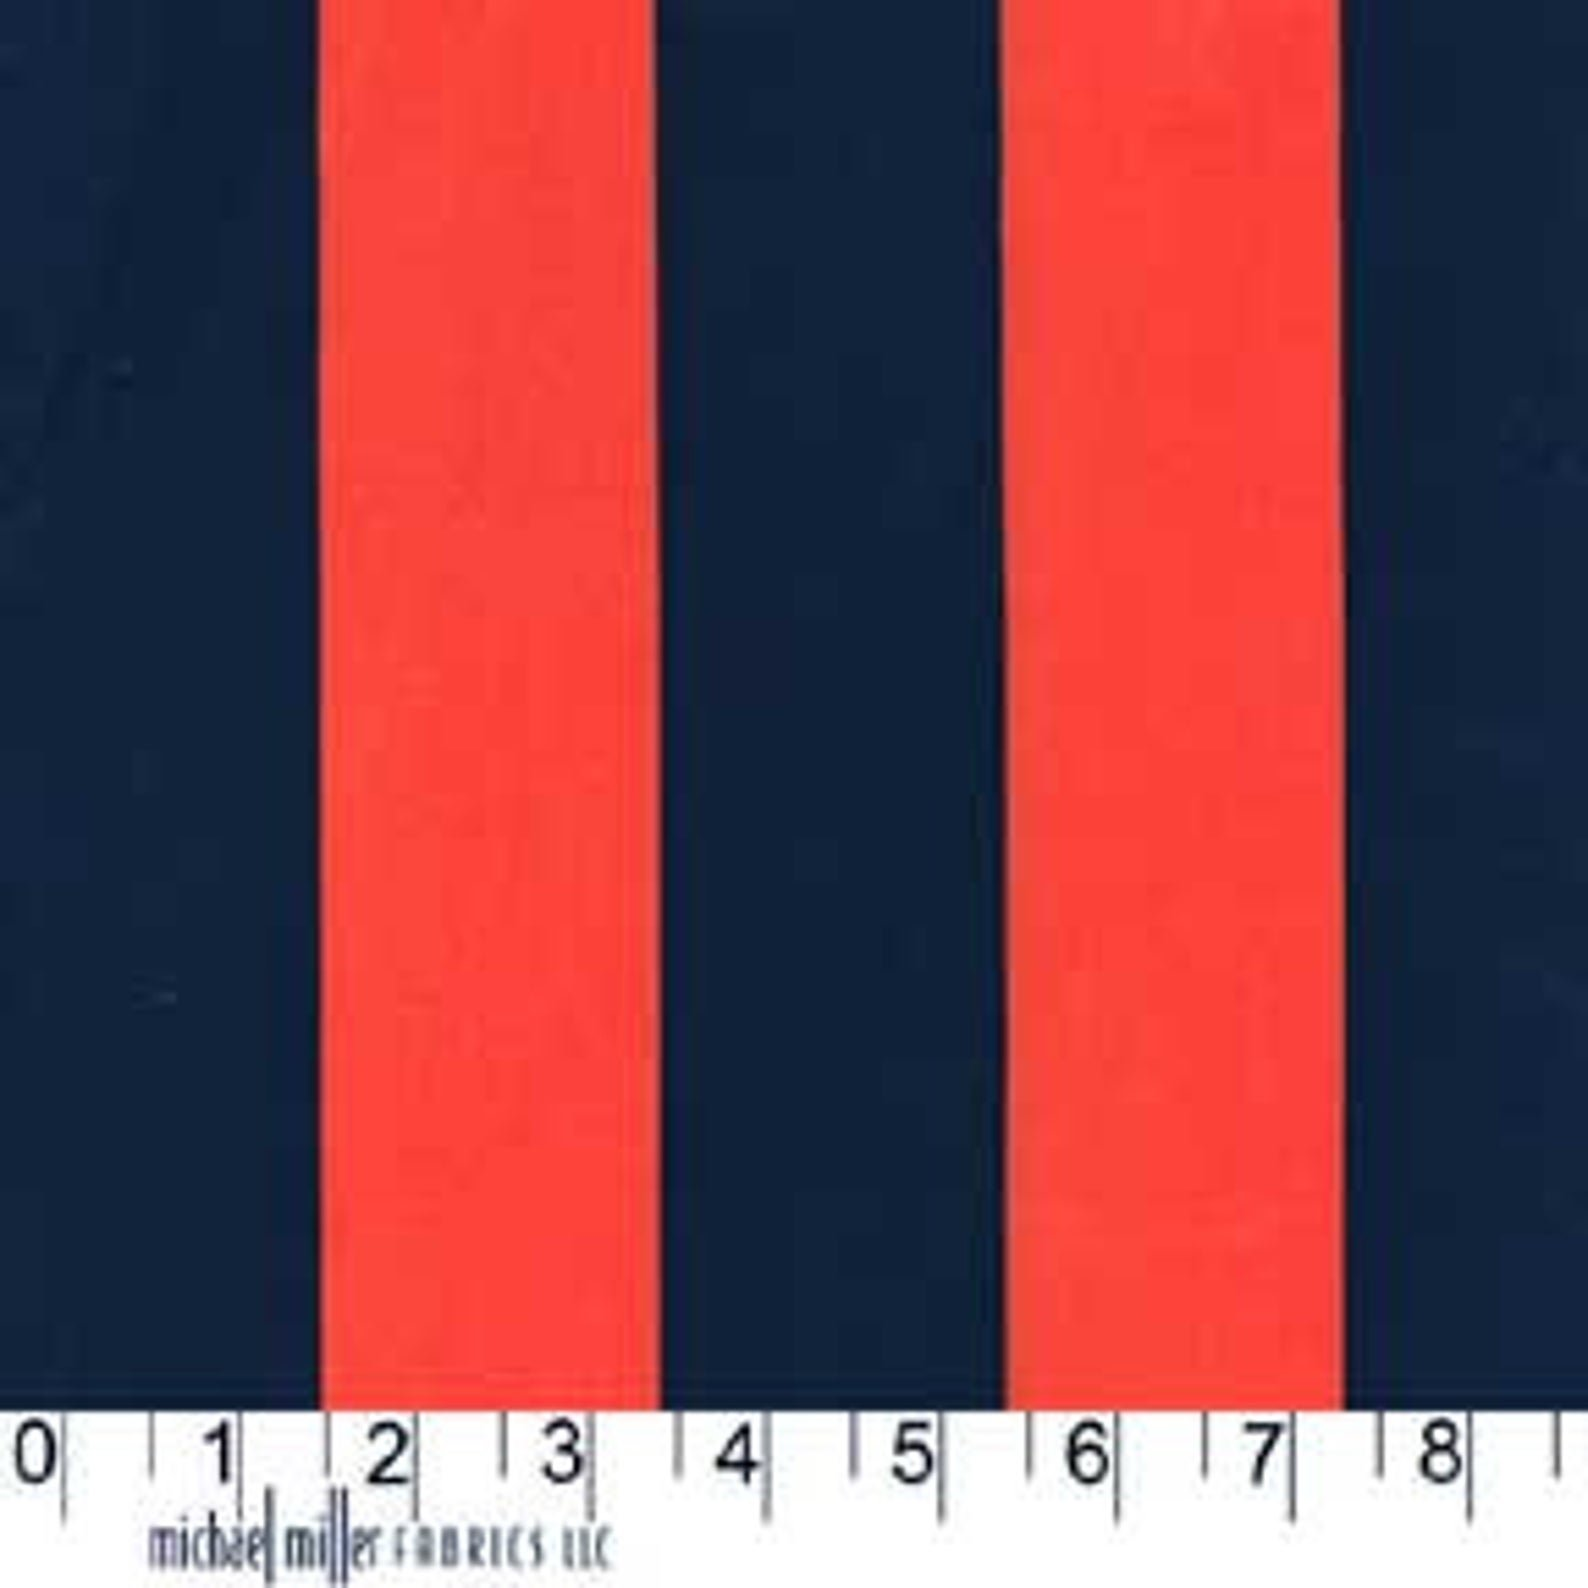 F-CB-MIM-PRO-43 Michael Miller-Promos-43-Two by Two Stripes - Red/Blue